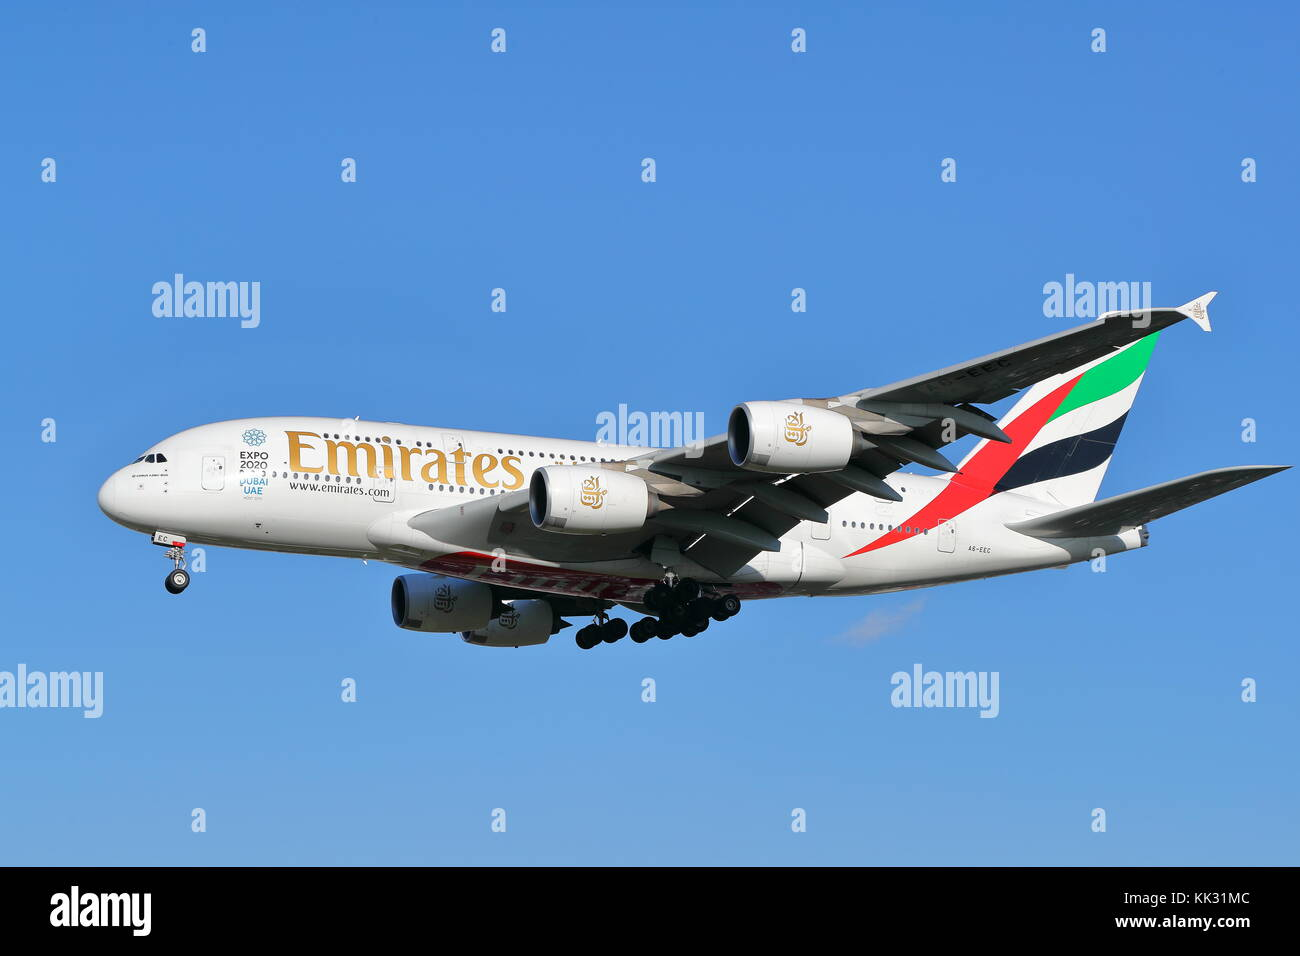 United Emirates Airbus A380 A6-EEC landing at London Heathrow Airport, UK - Stock Image